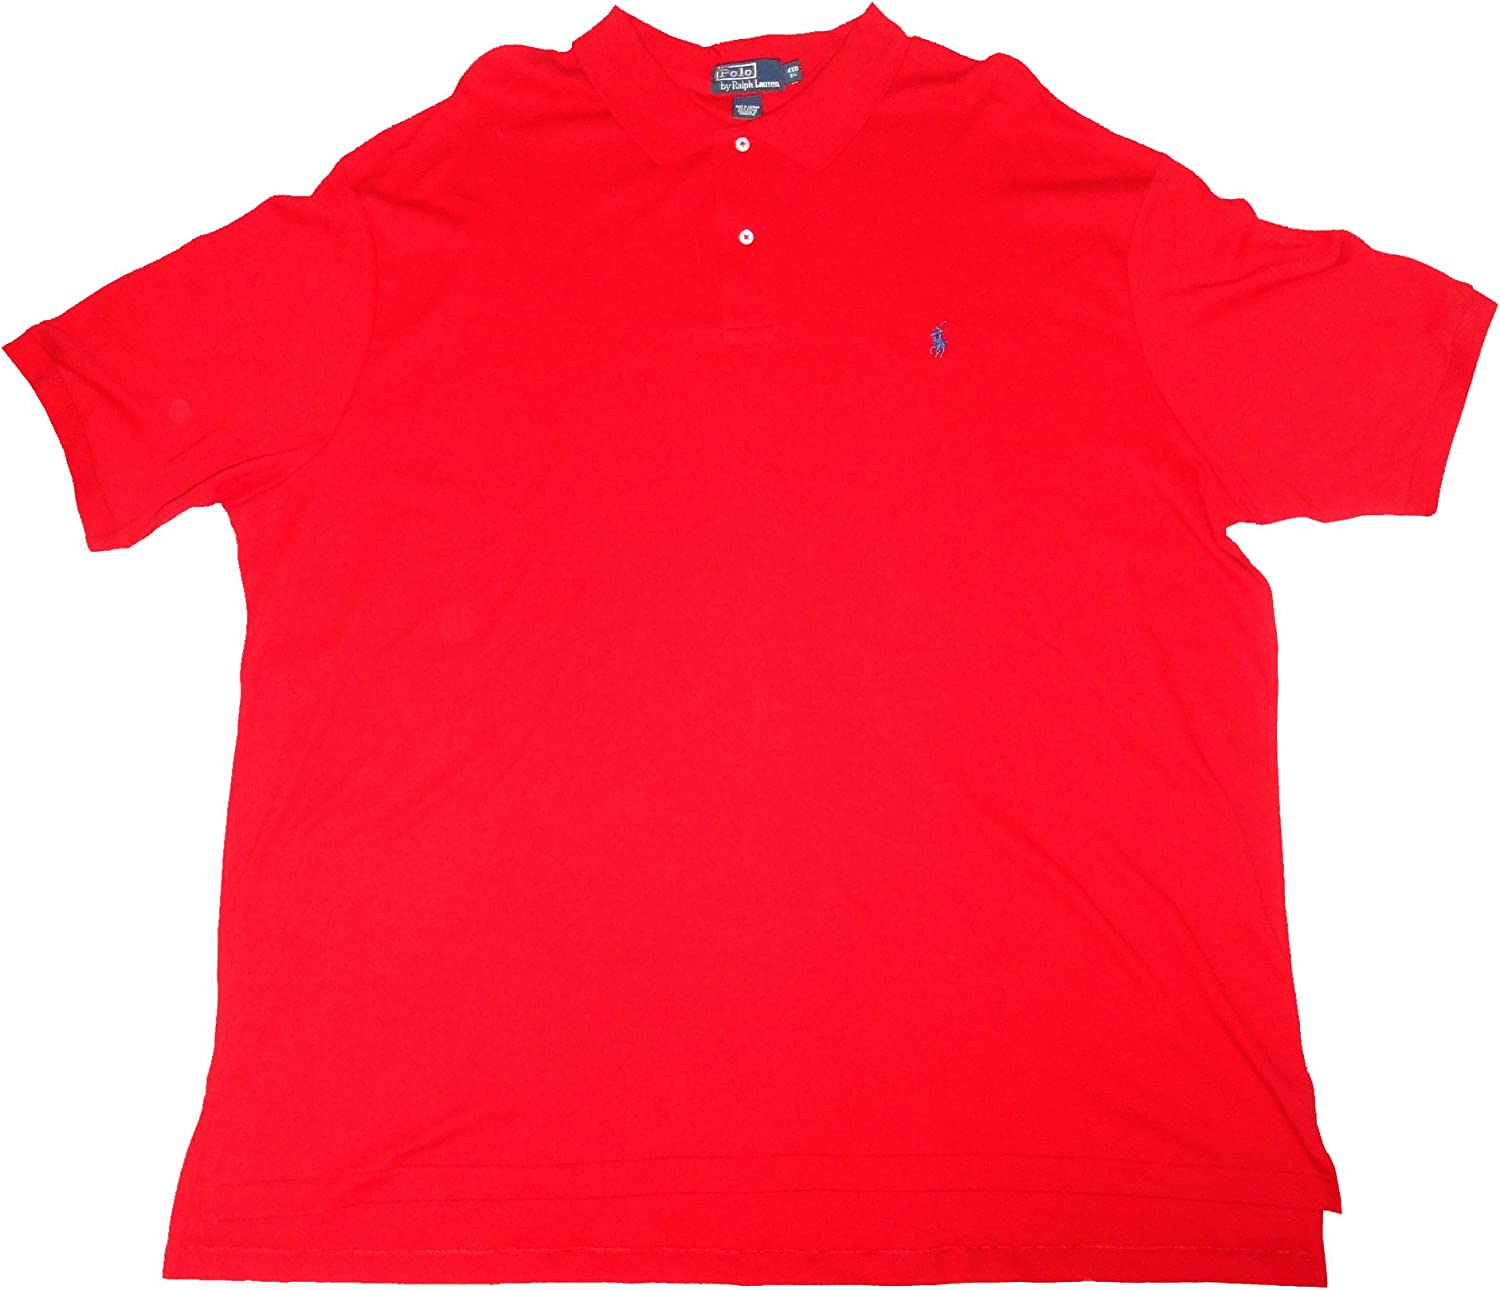 Polo Ralph Lauren Men's Large Pullover Shirt, Size 4XBl, Red